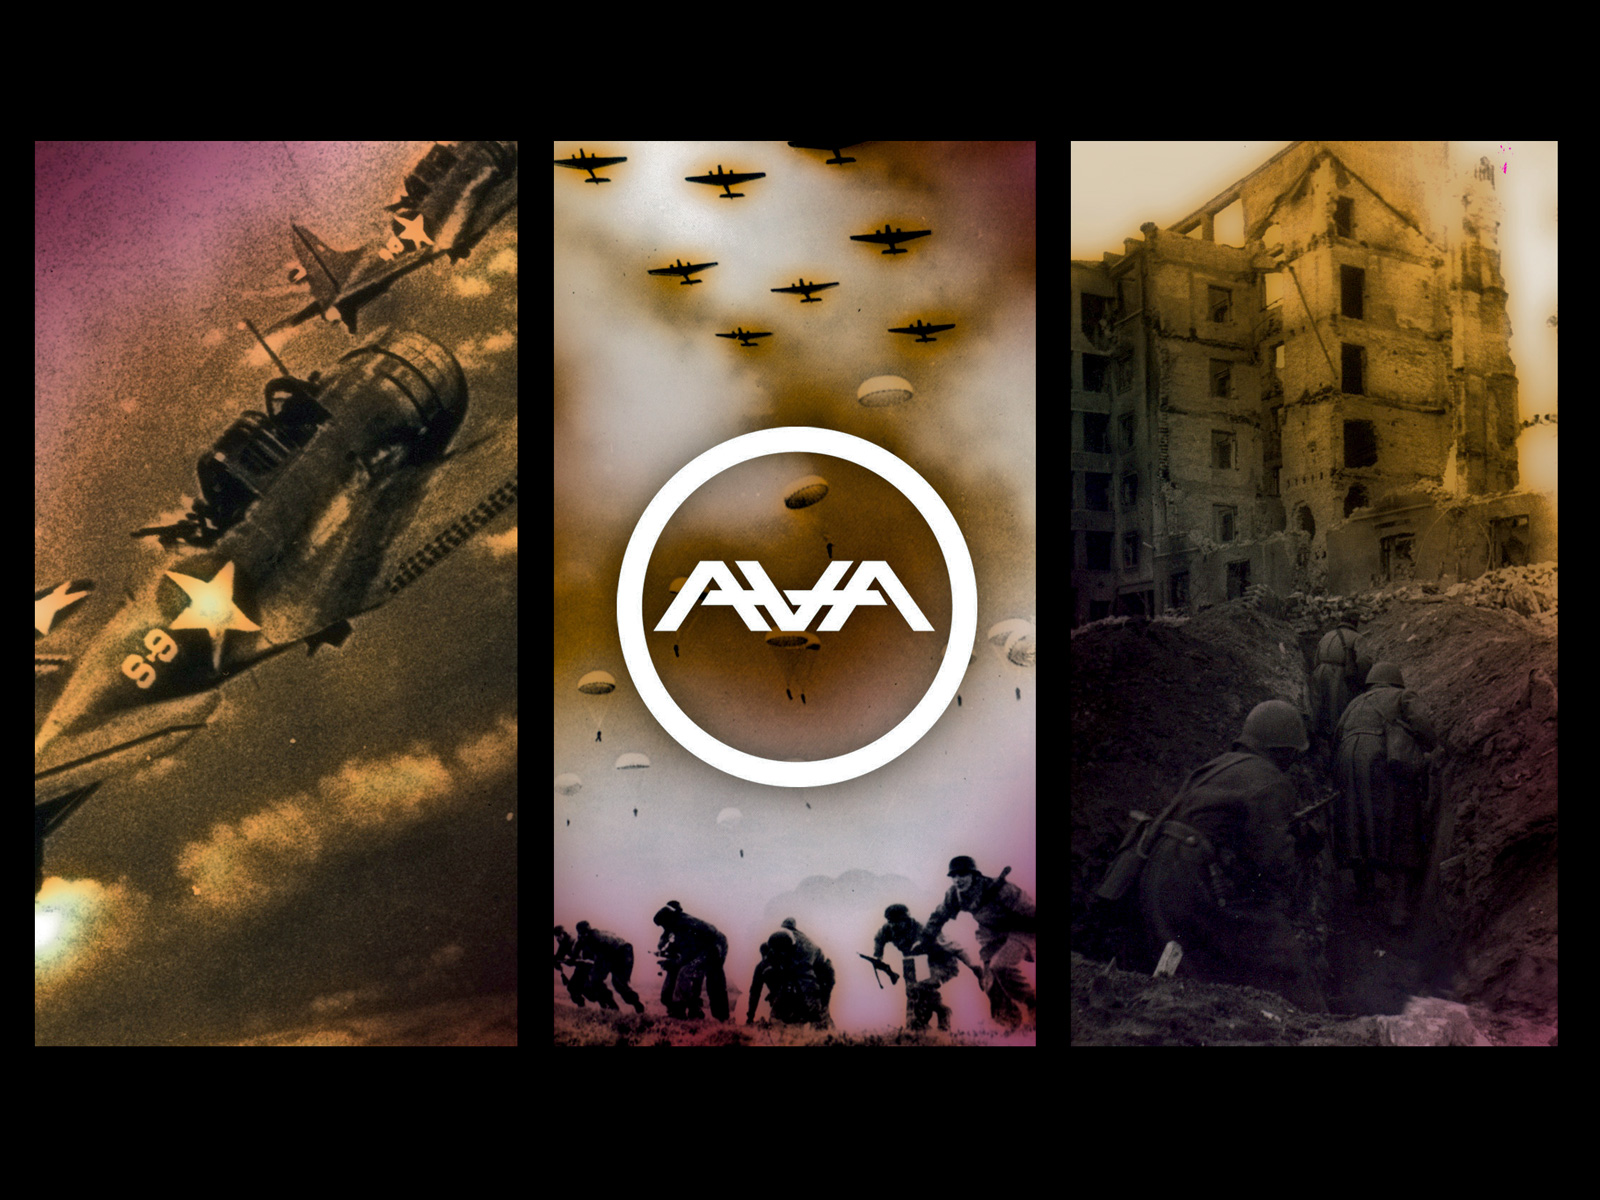 Angels+and+airwaves+wallpaper